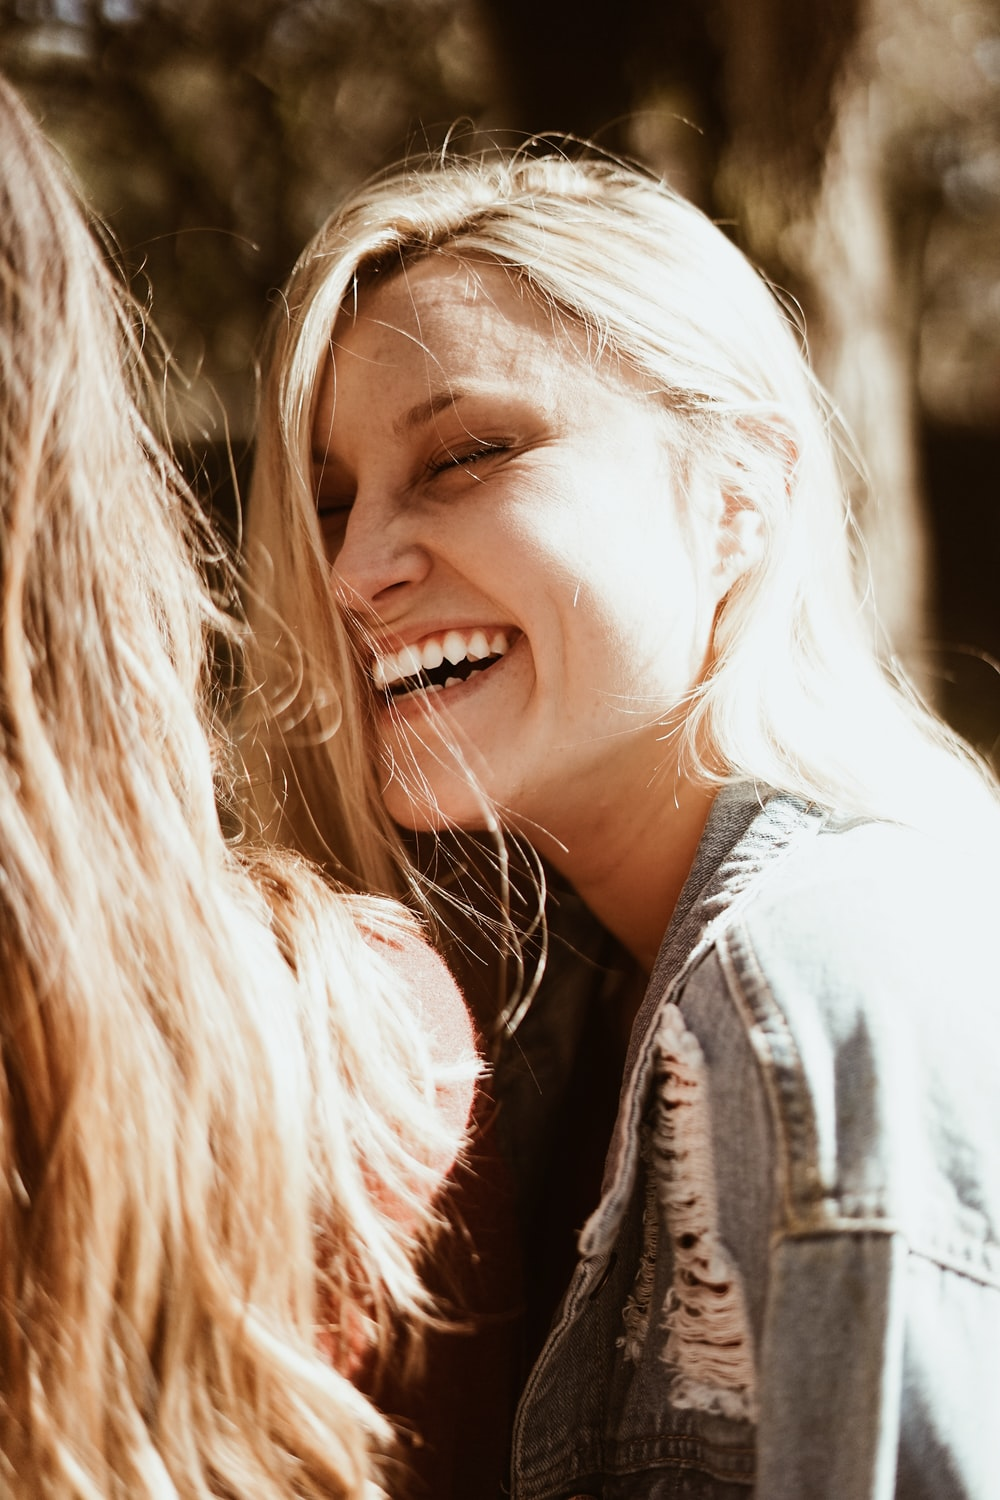 smiling woman during day